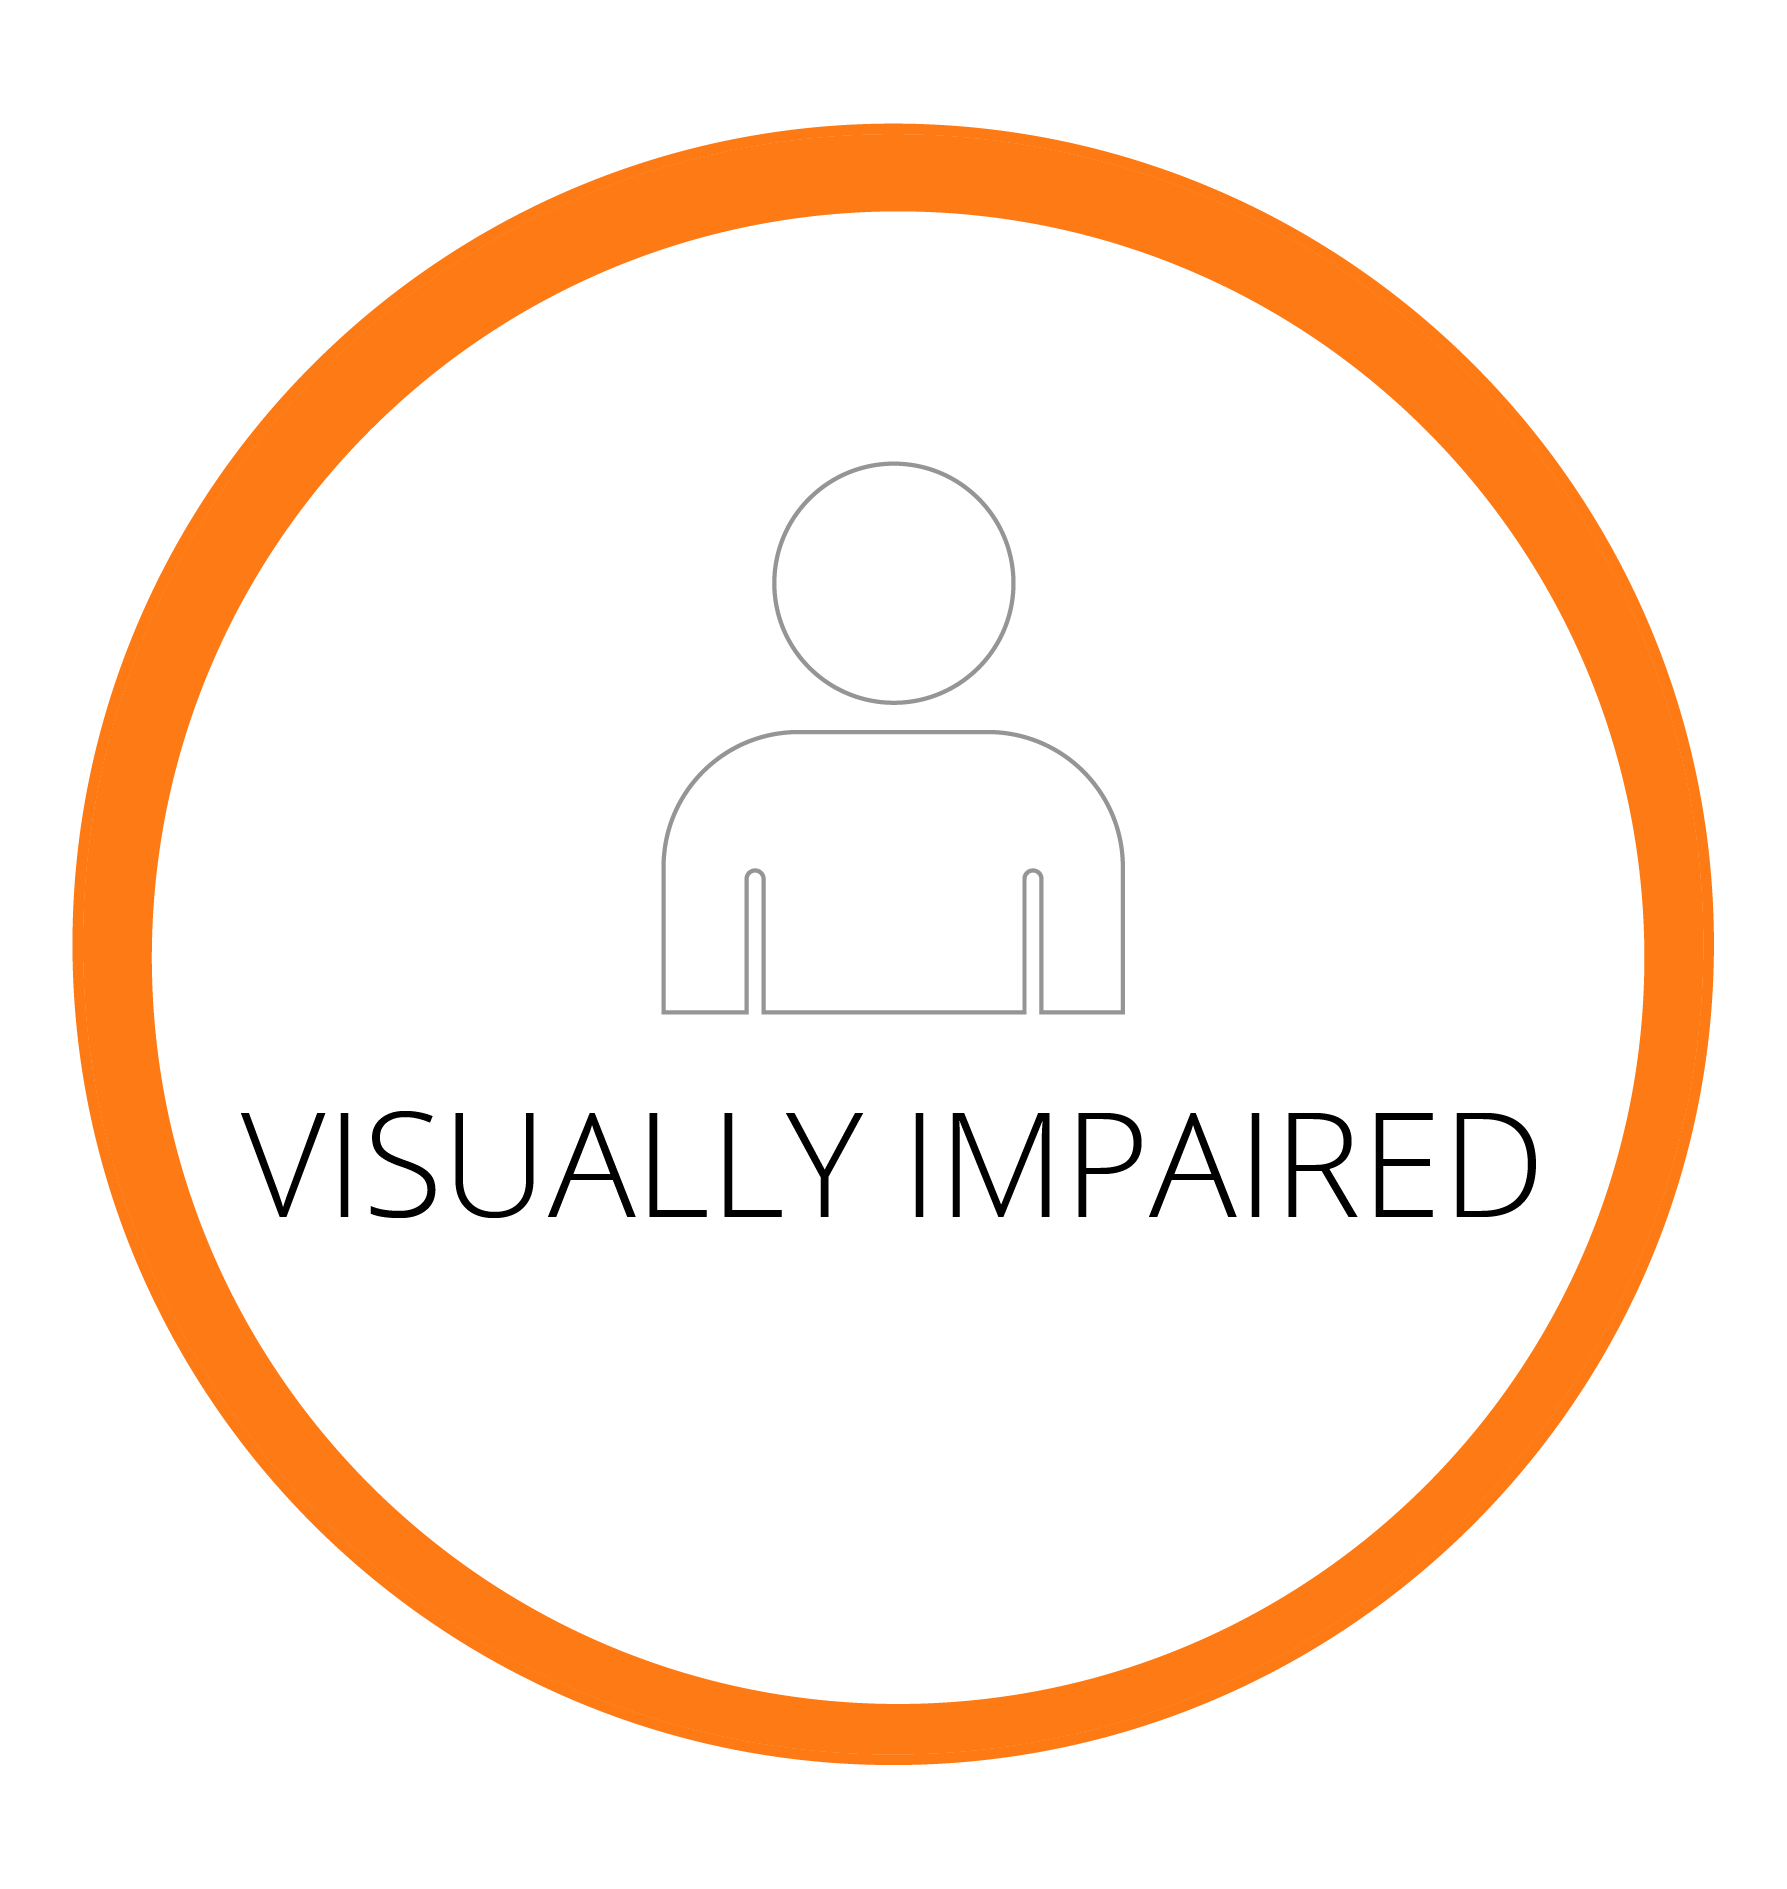 23.7 MILLION PEOPLE ARE VISUALLY IMPAIRED IN THE UNITED STATES ALONE